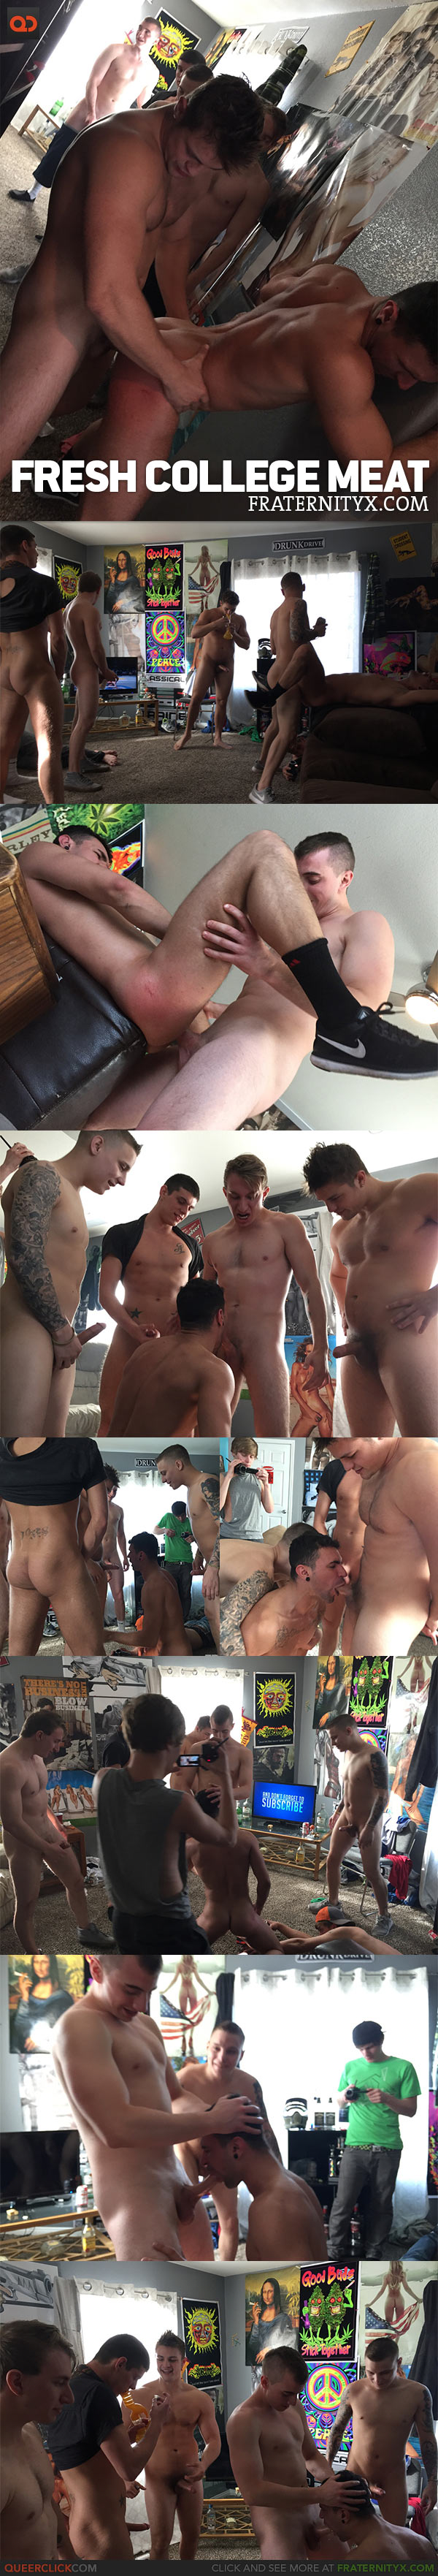 FraternityX: Fresh College Meat